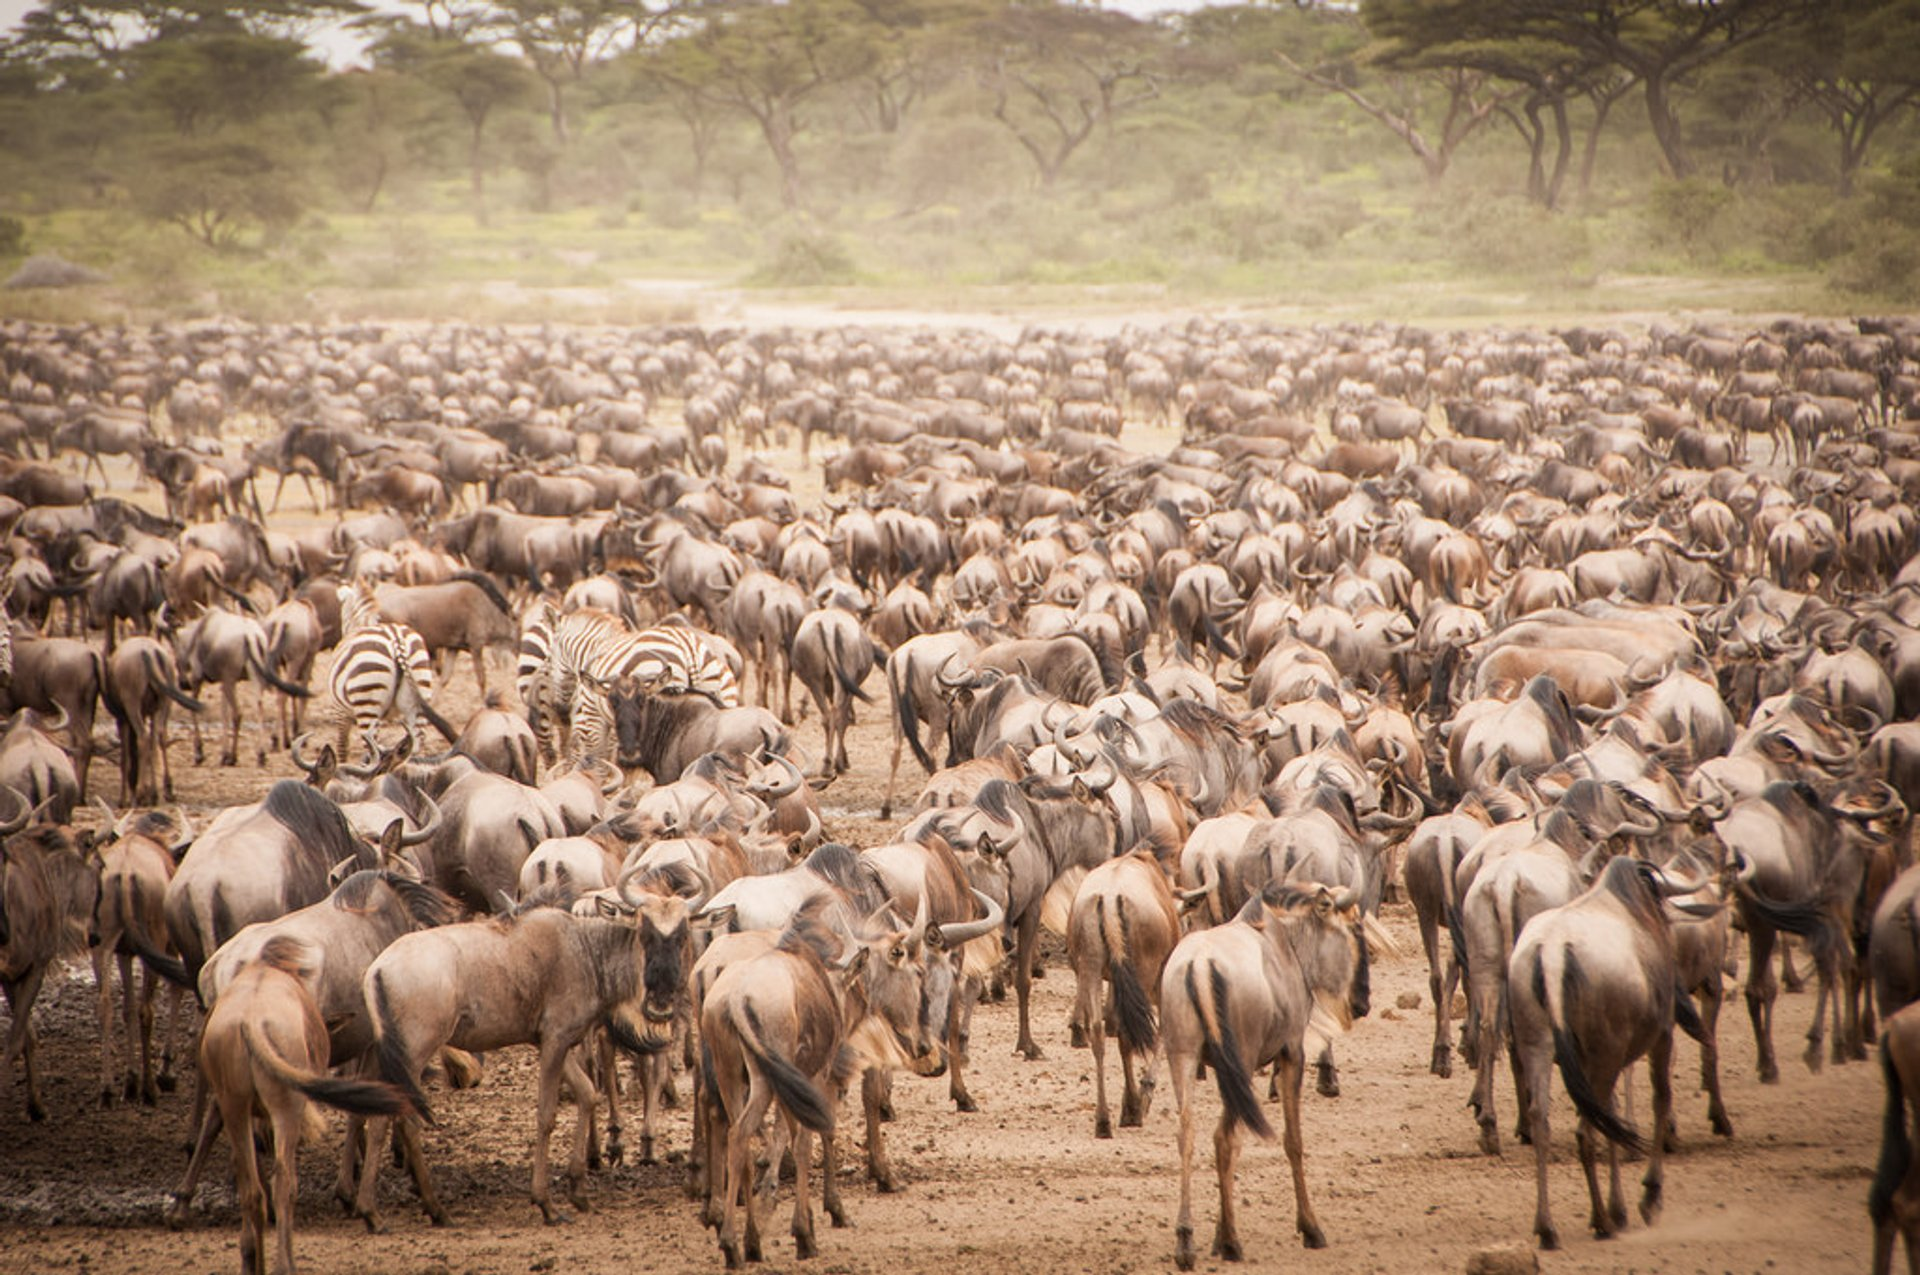 African Safari: The Great Migration, Serengeti National Park Tanzania 2019